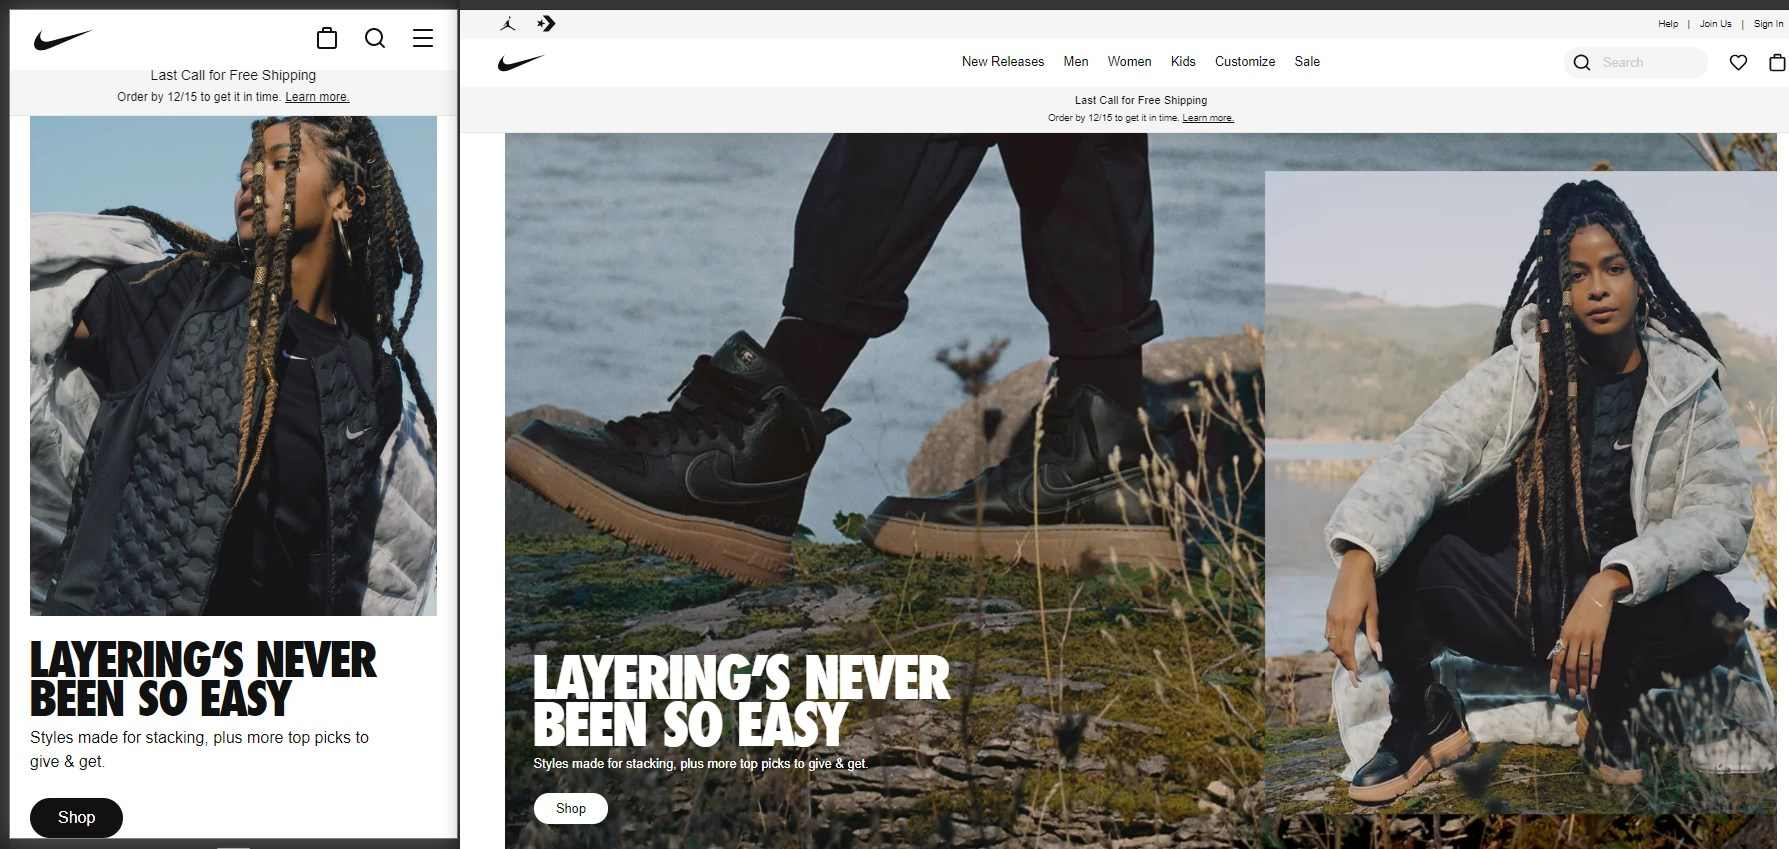 Nike.com adapts to the screen size, changing the image, font, and other elements when rendered on a mobile device.